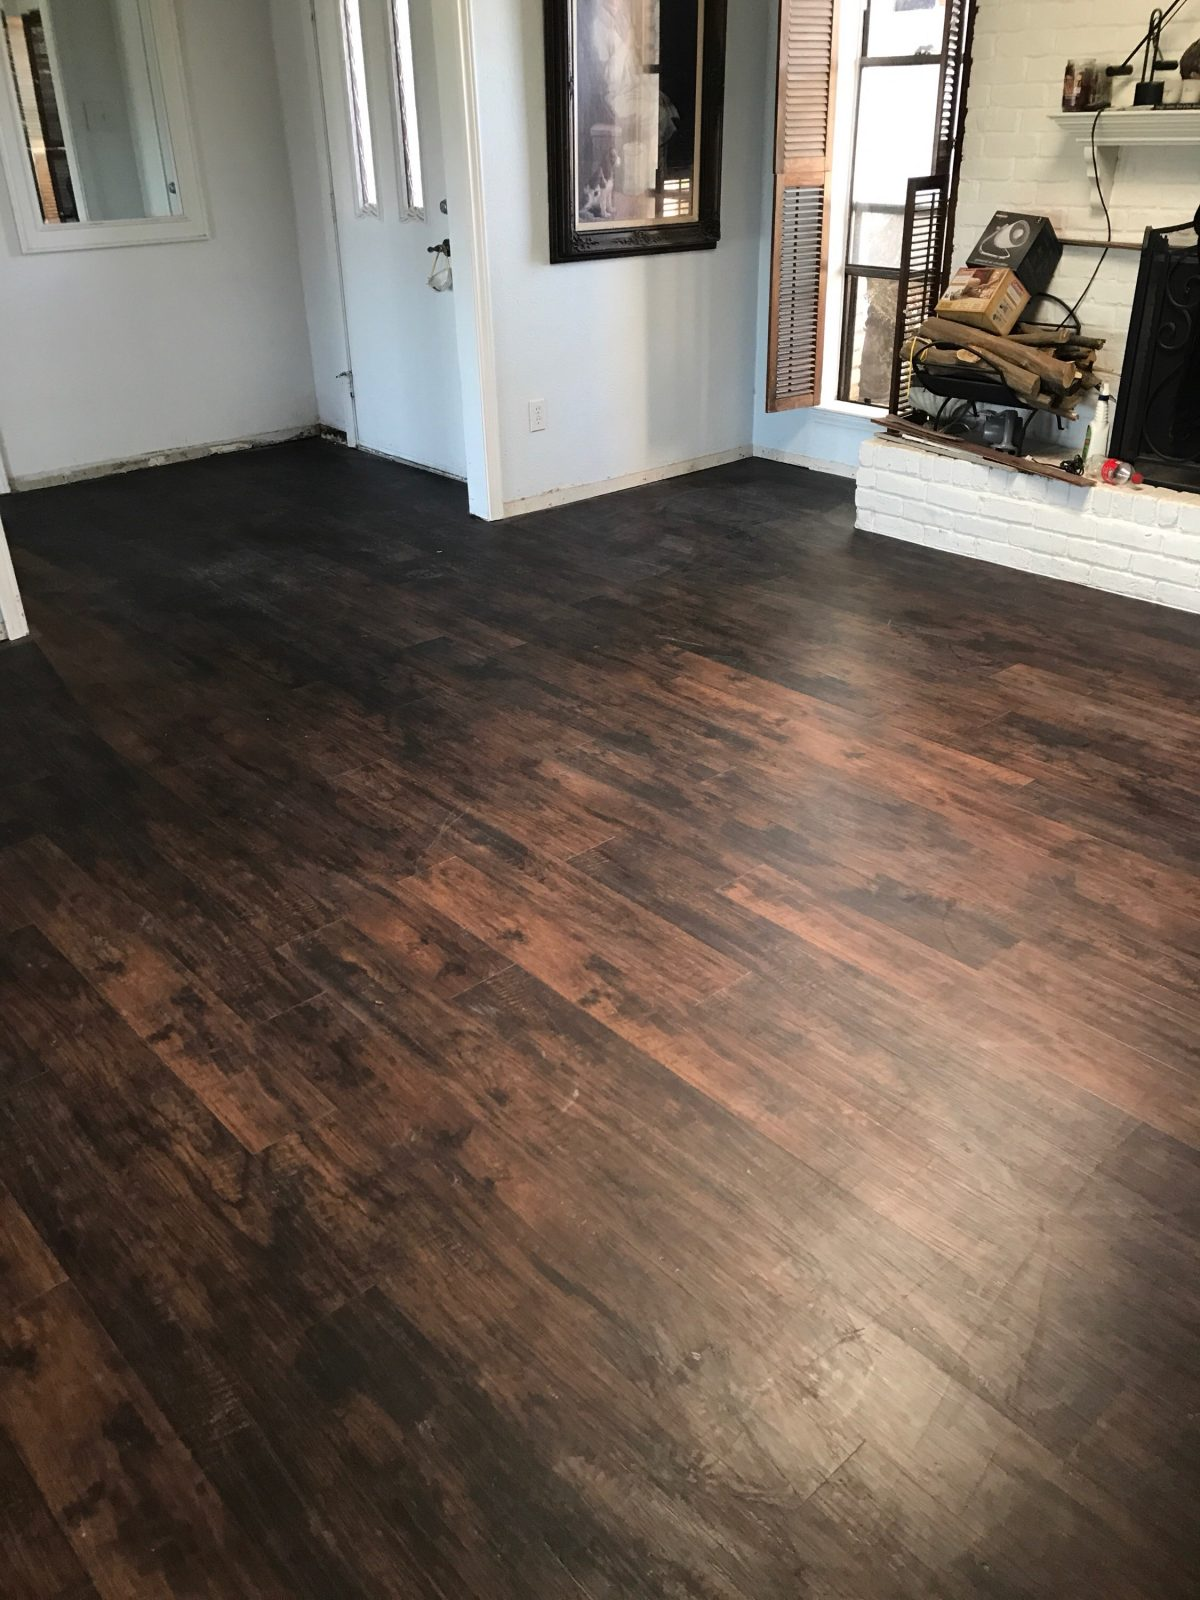 Wood like vinyl plank flooring